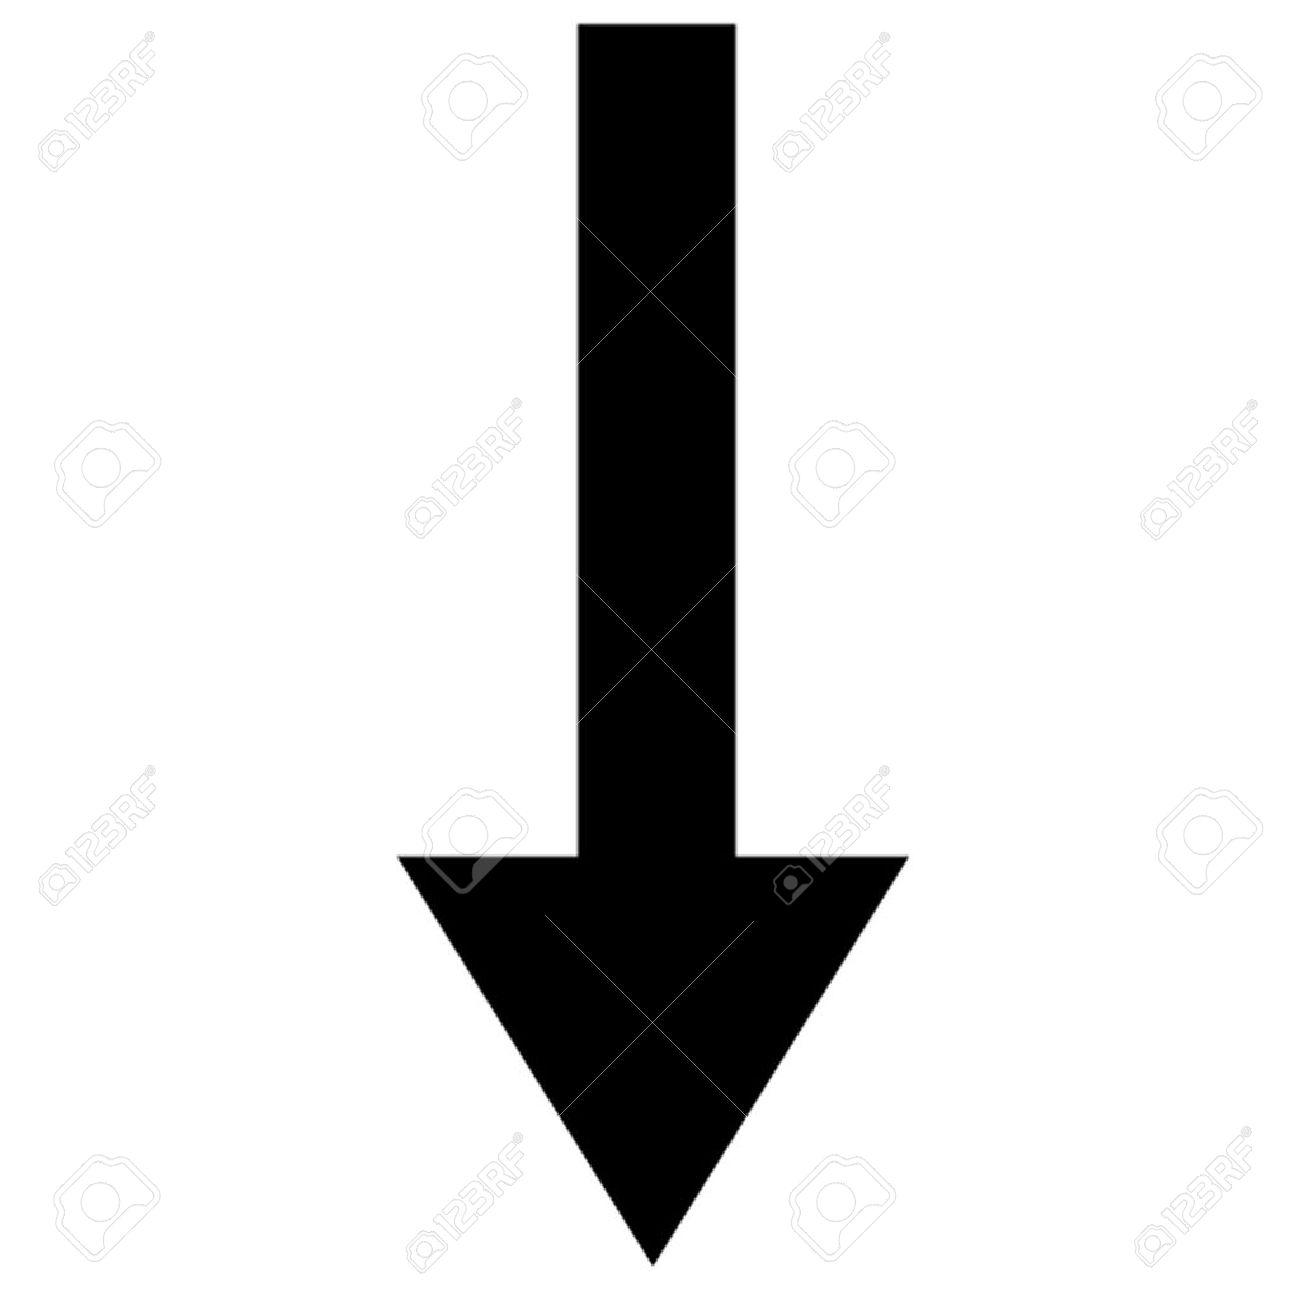 Picture of arrow pointing down banner free download Arrow Pointing Down Royalty Free Cliparts, Vectors, And Stock ... banner free download